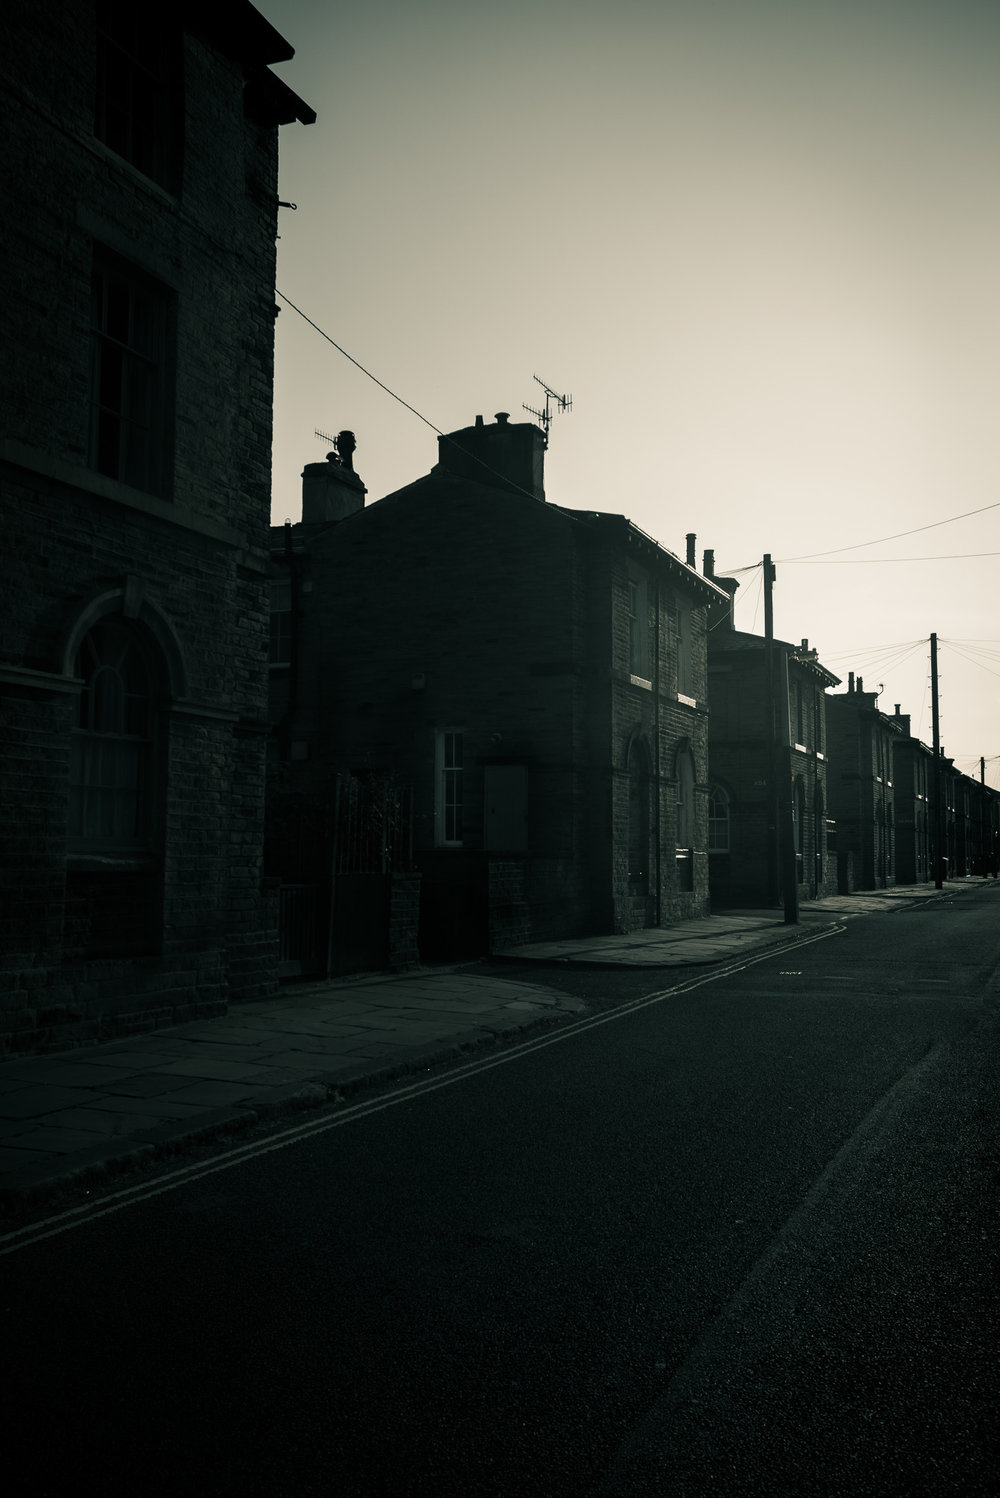 Saltaire street at dusk in monochrome